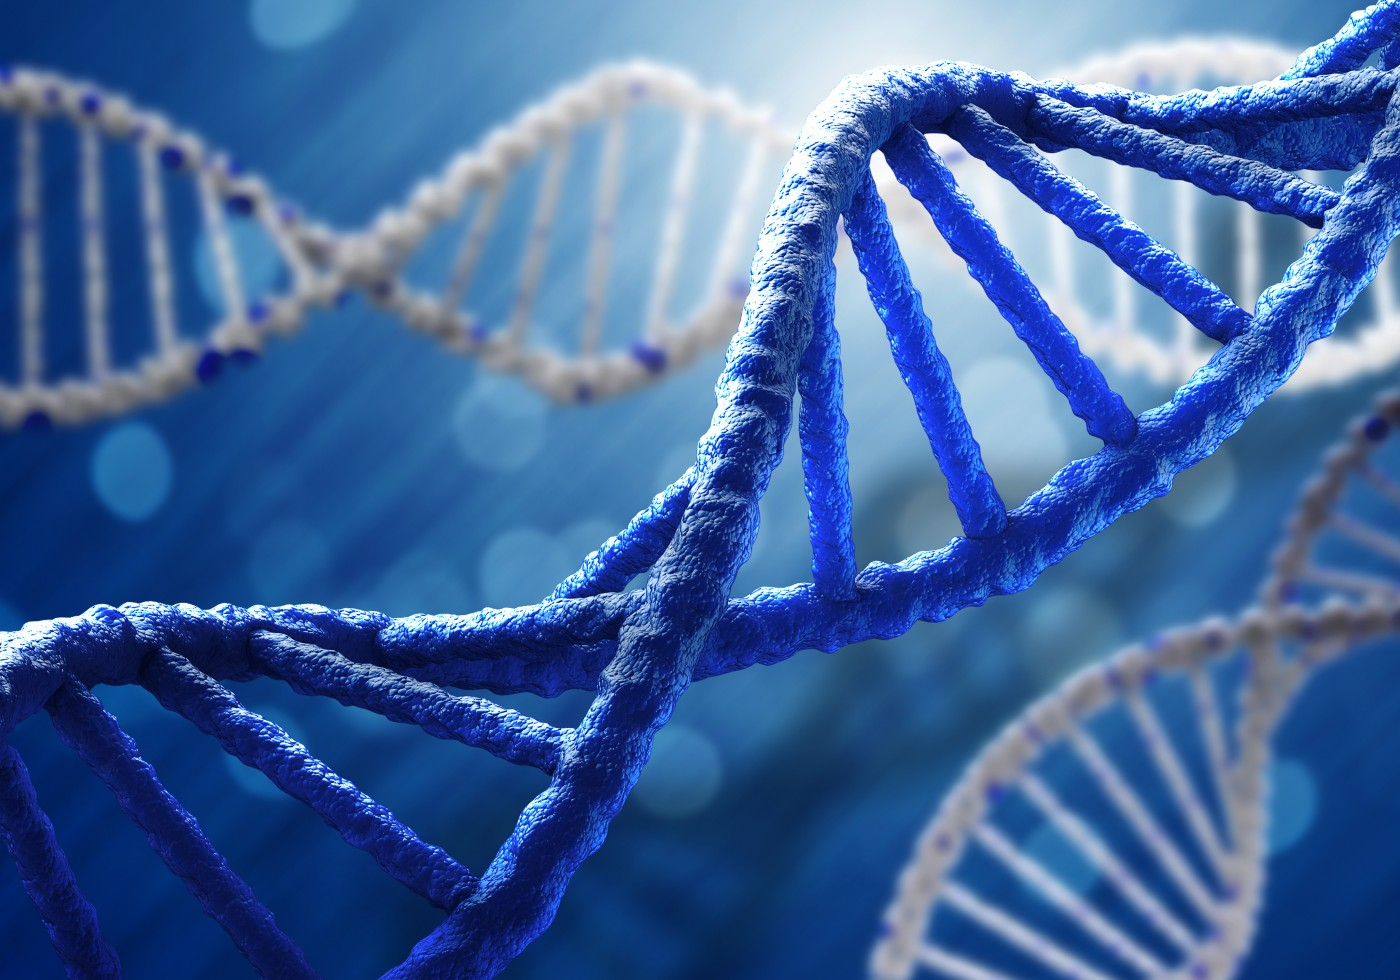 Researchers identify five genes likely interacting with each other in pulmonary sarcoidosis patients.